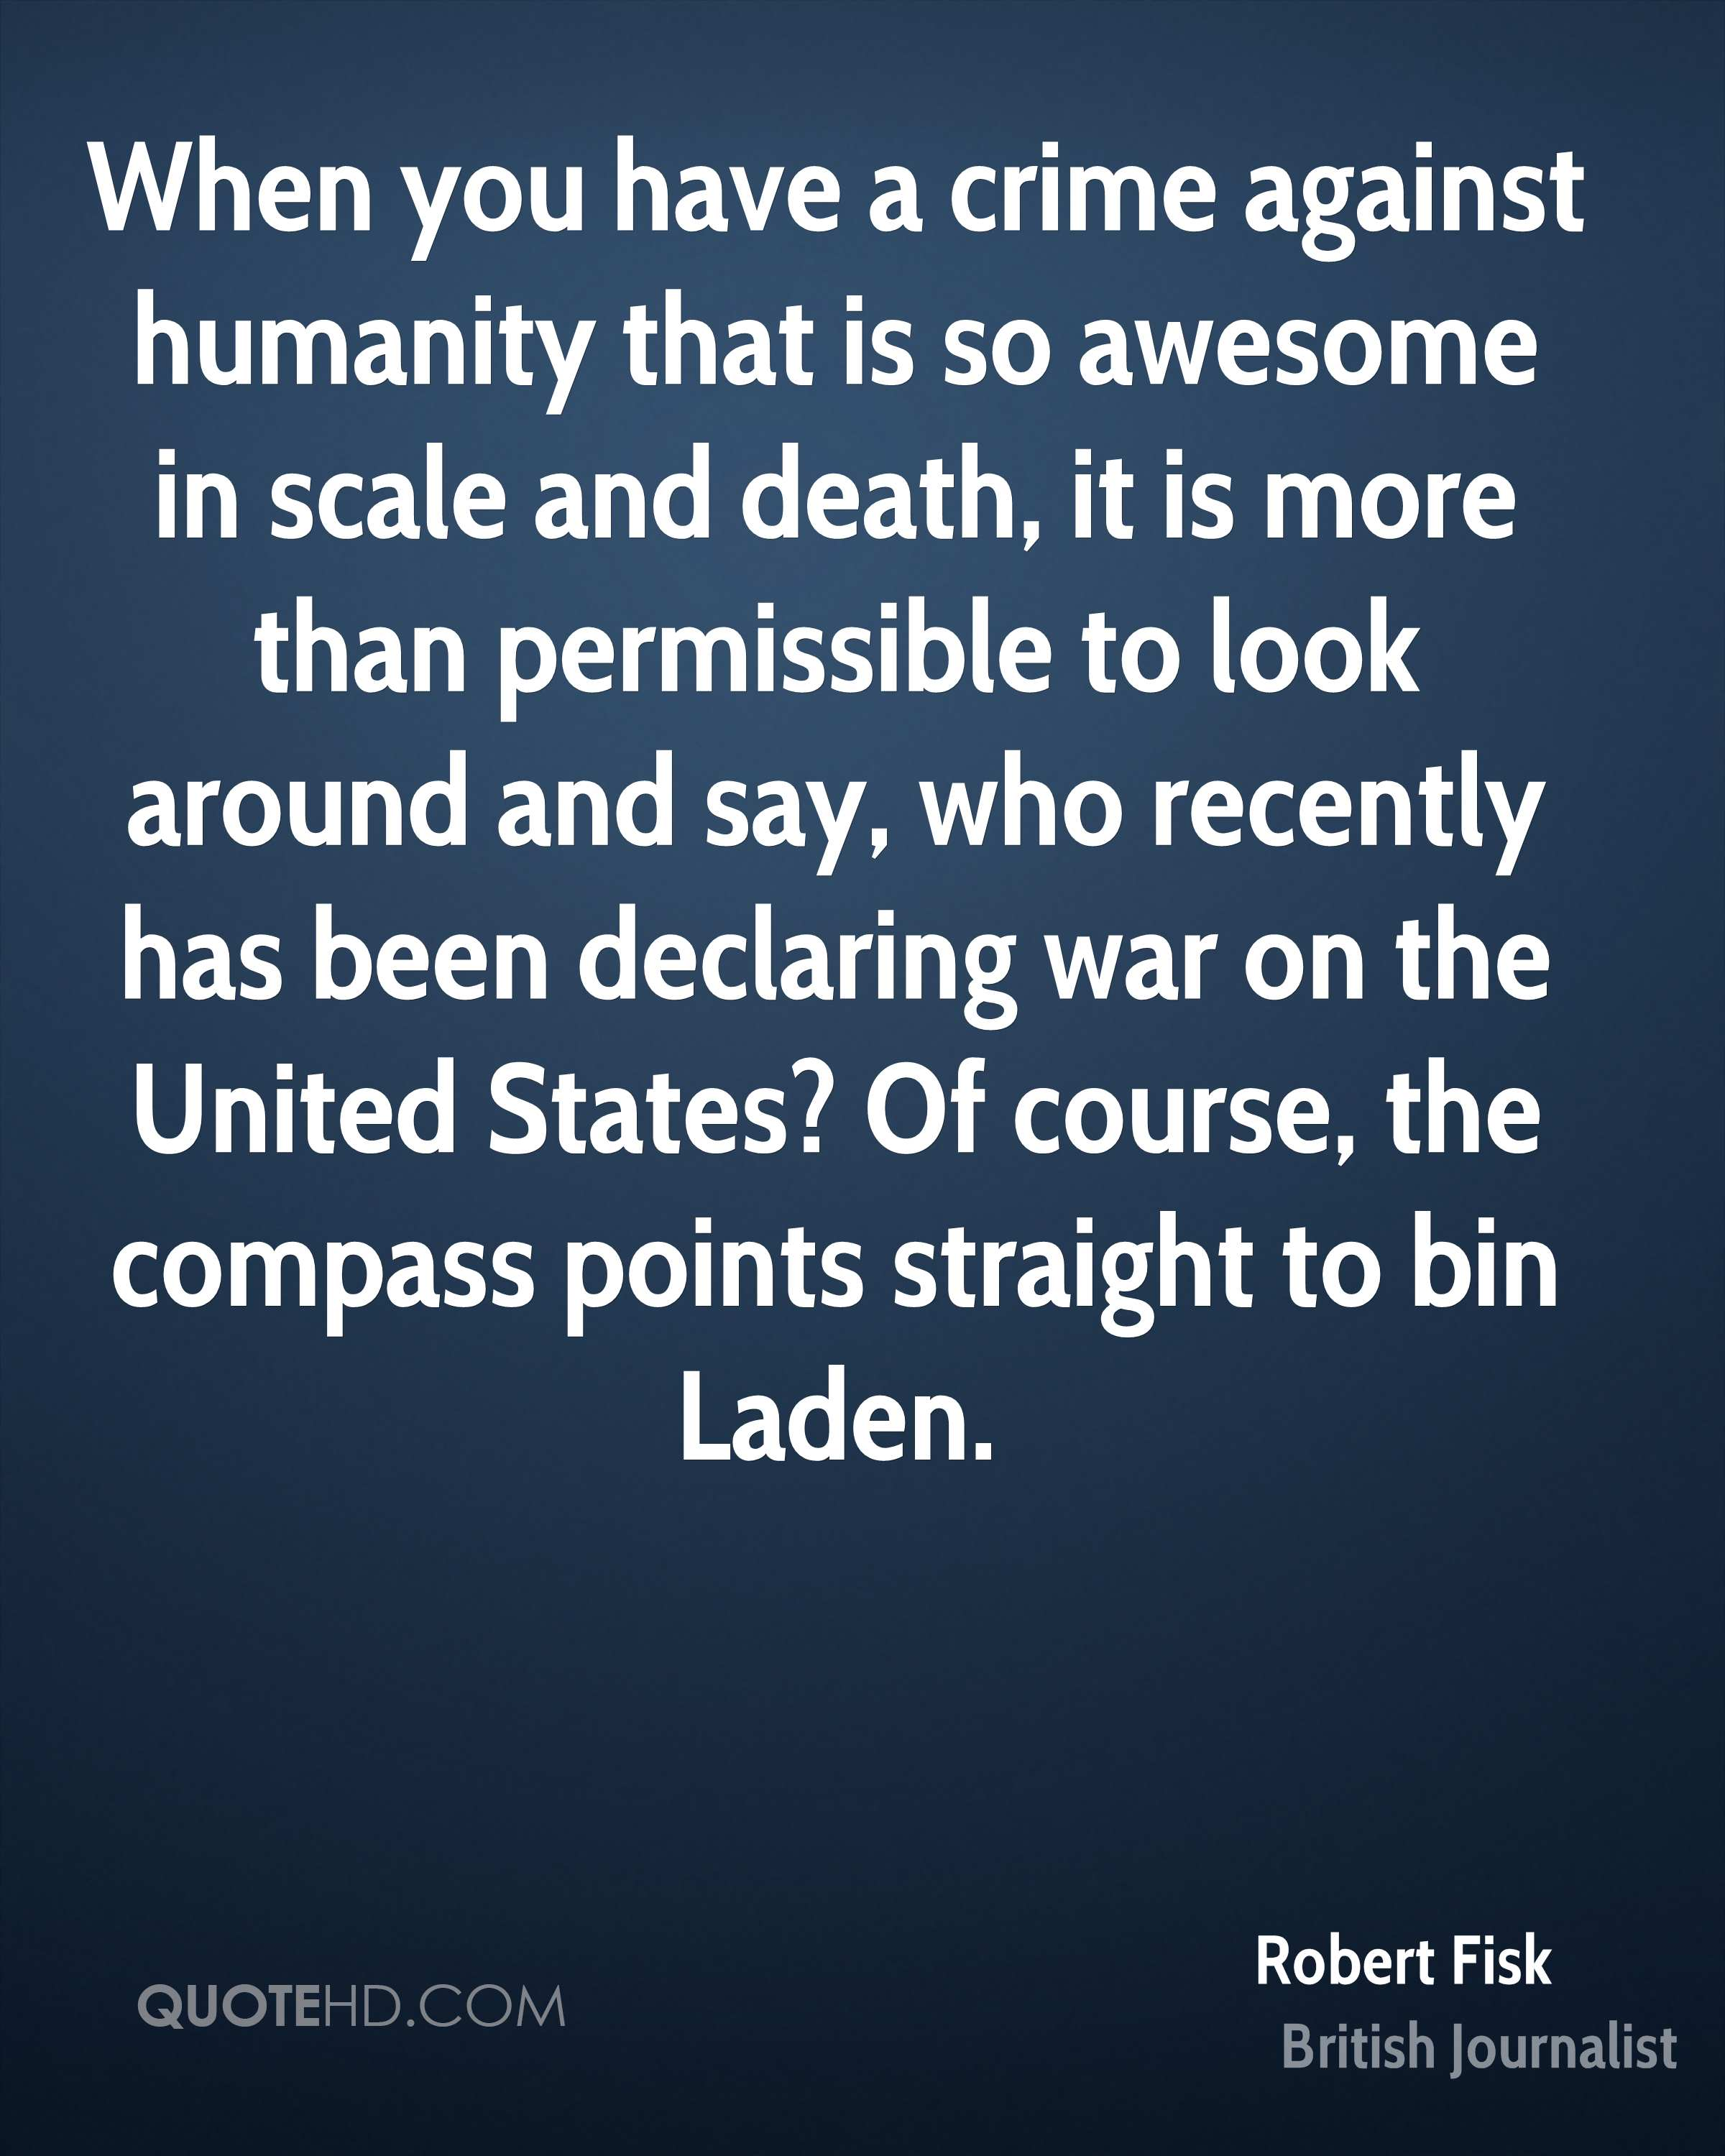 When you have a crime against humanity that is so awesome in scale and death, it is more than permissible to look around and say, who recently has been declaring war on the United States? Of course, the compass points straight to bin Laden.